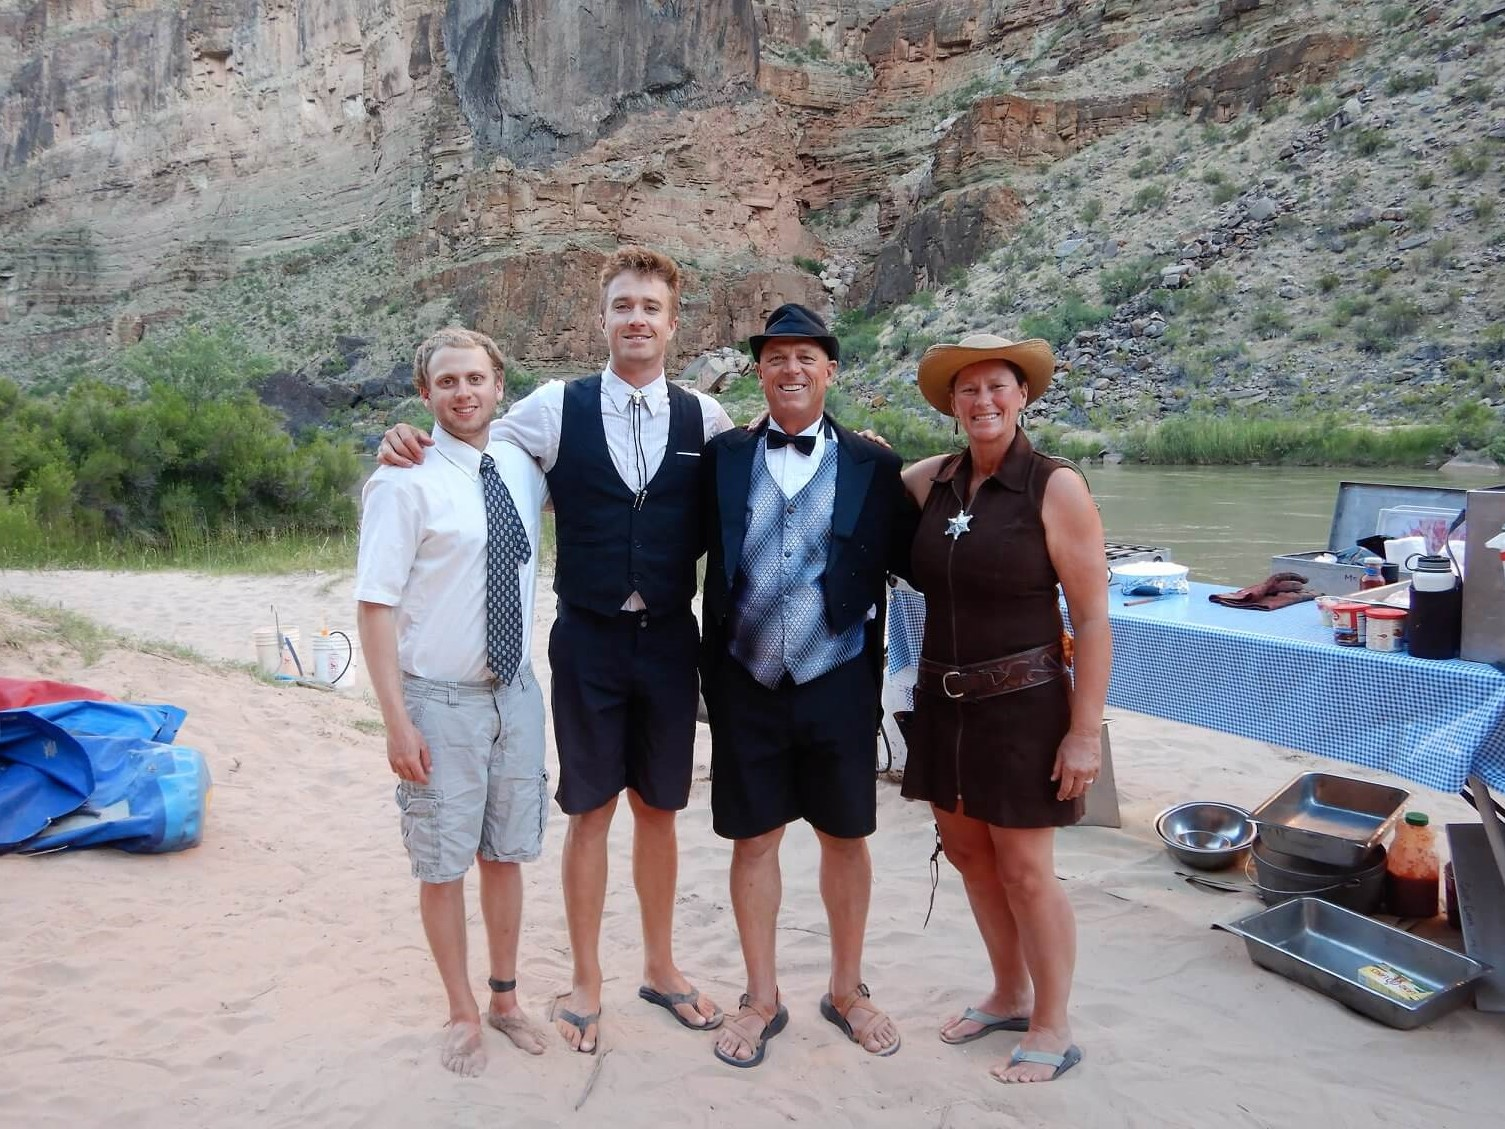 Dress up night on a river rafting trip. secrets the guidebook doesn't tell you